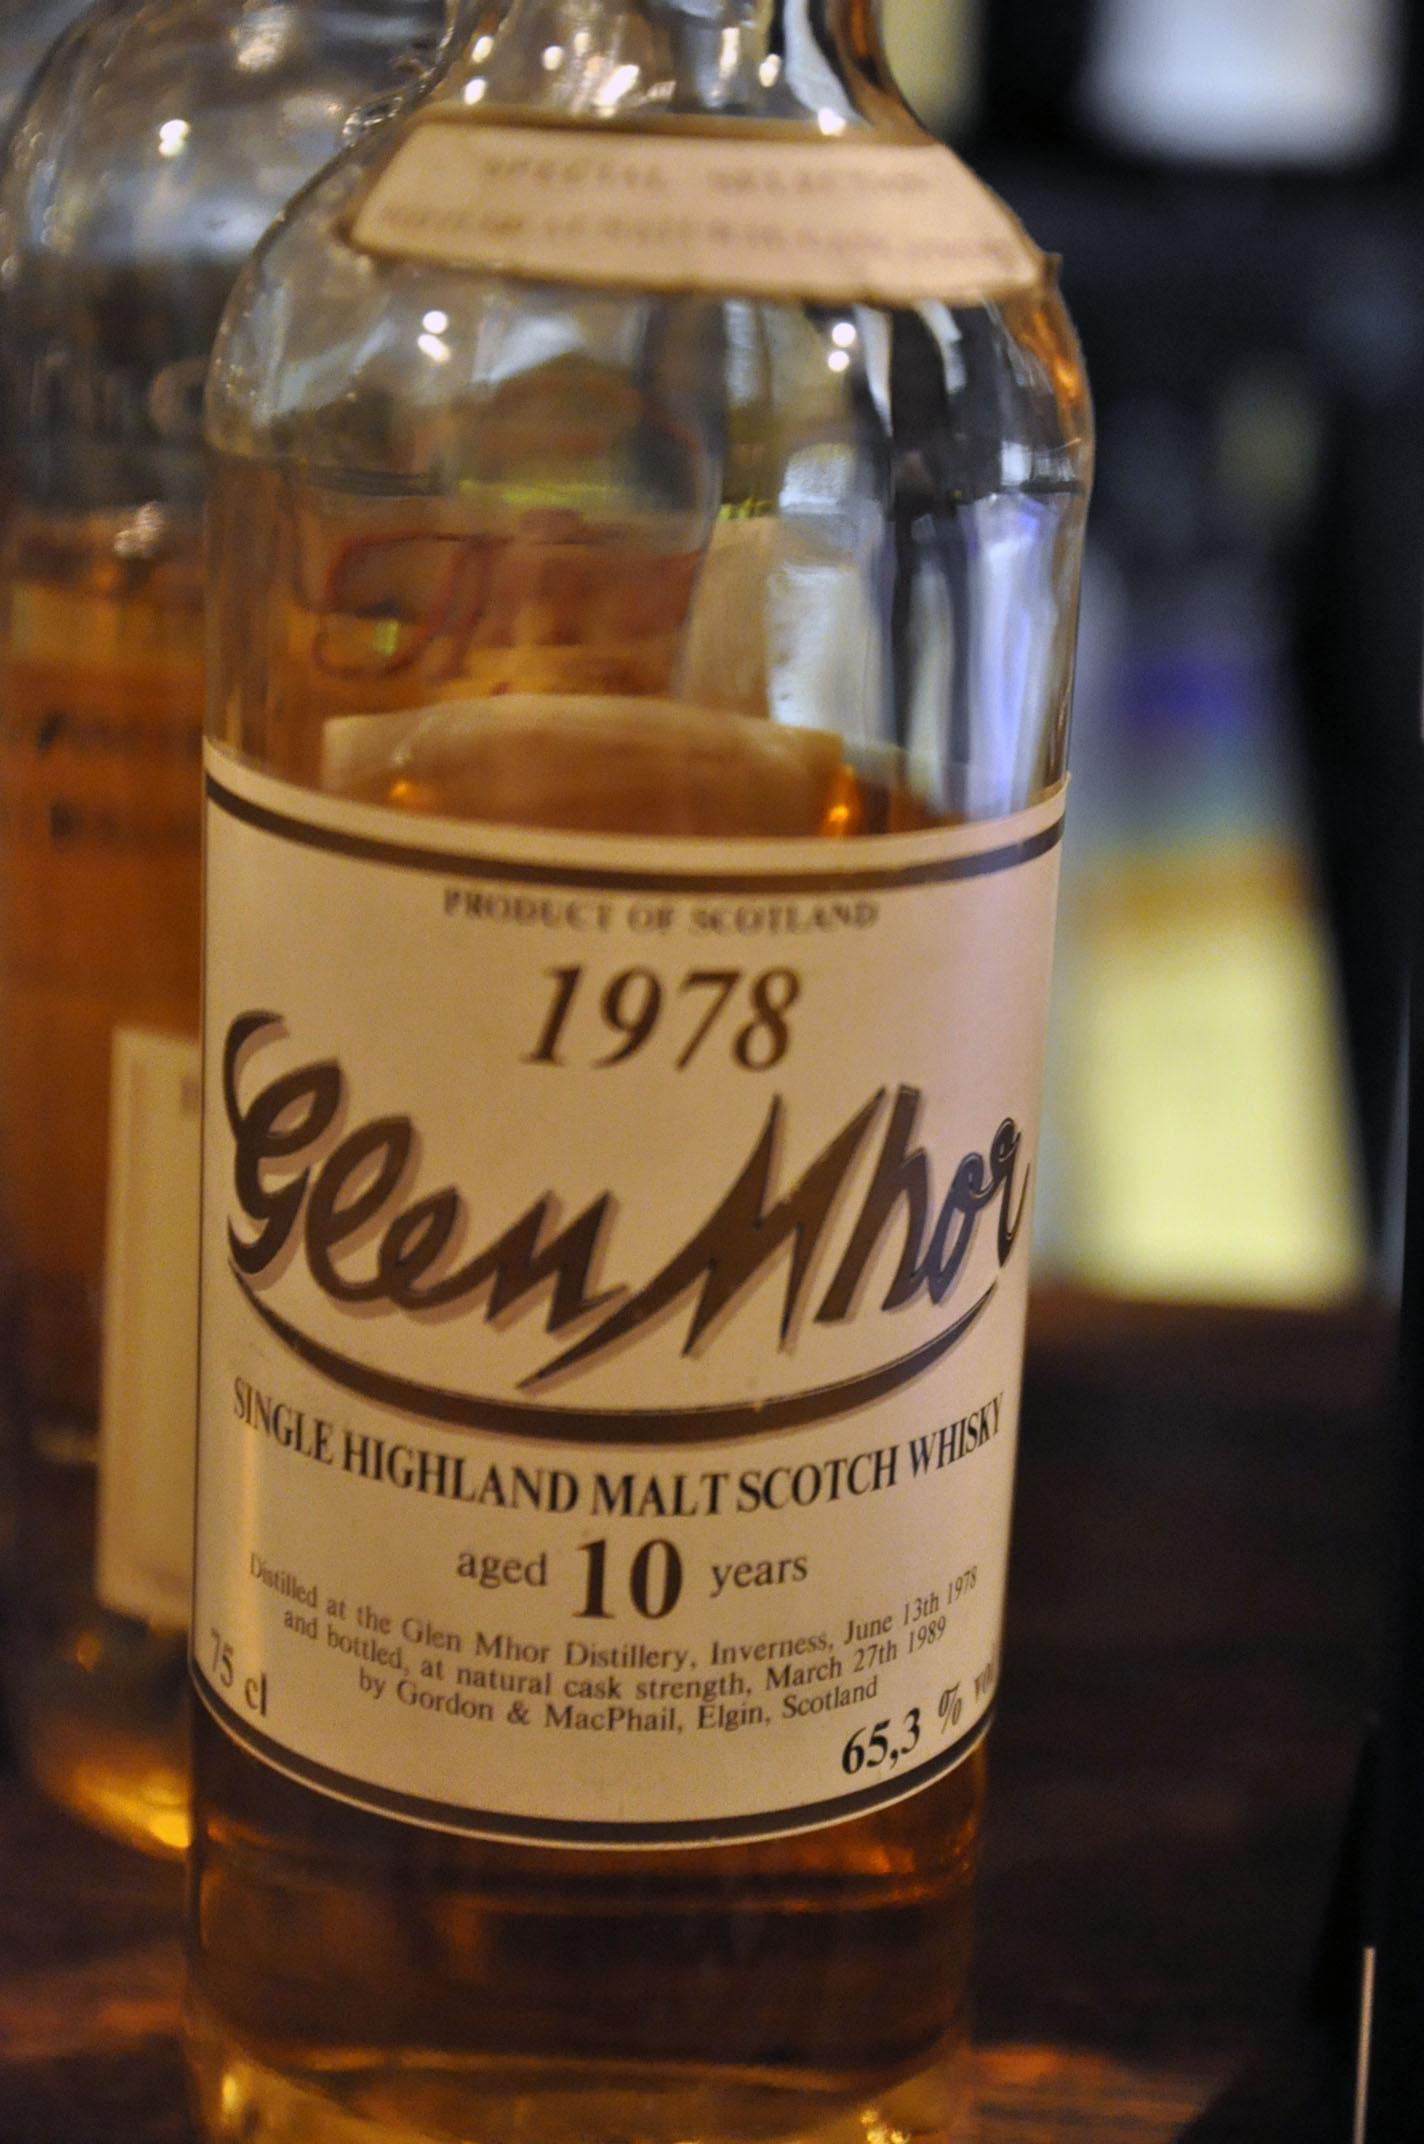 グレンモール Glen Mhor 10yo 1978/1989 (65.3%, G&M for Intertrade, 300bts, 75cl)